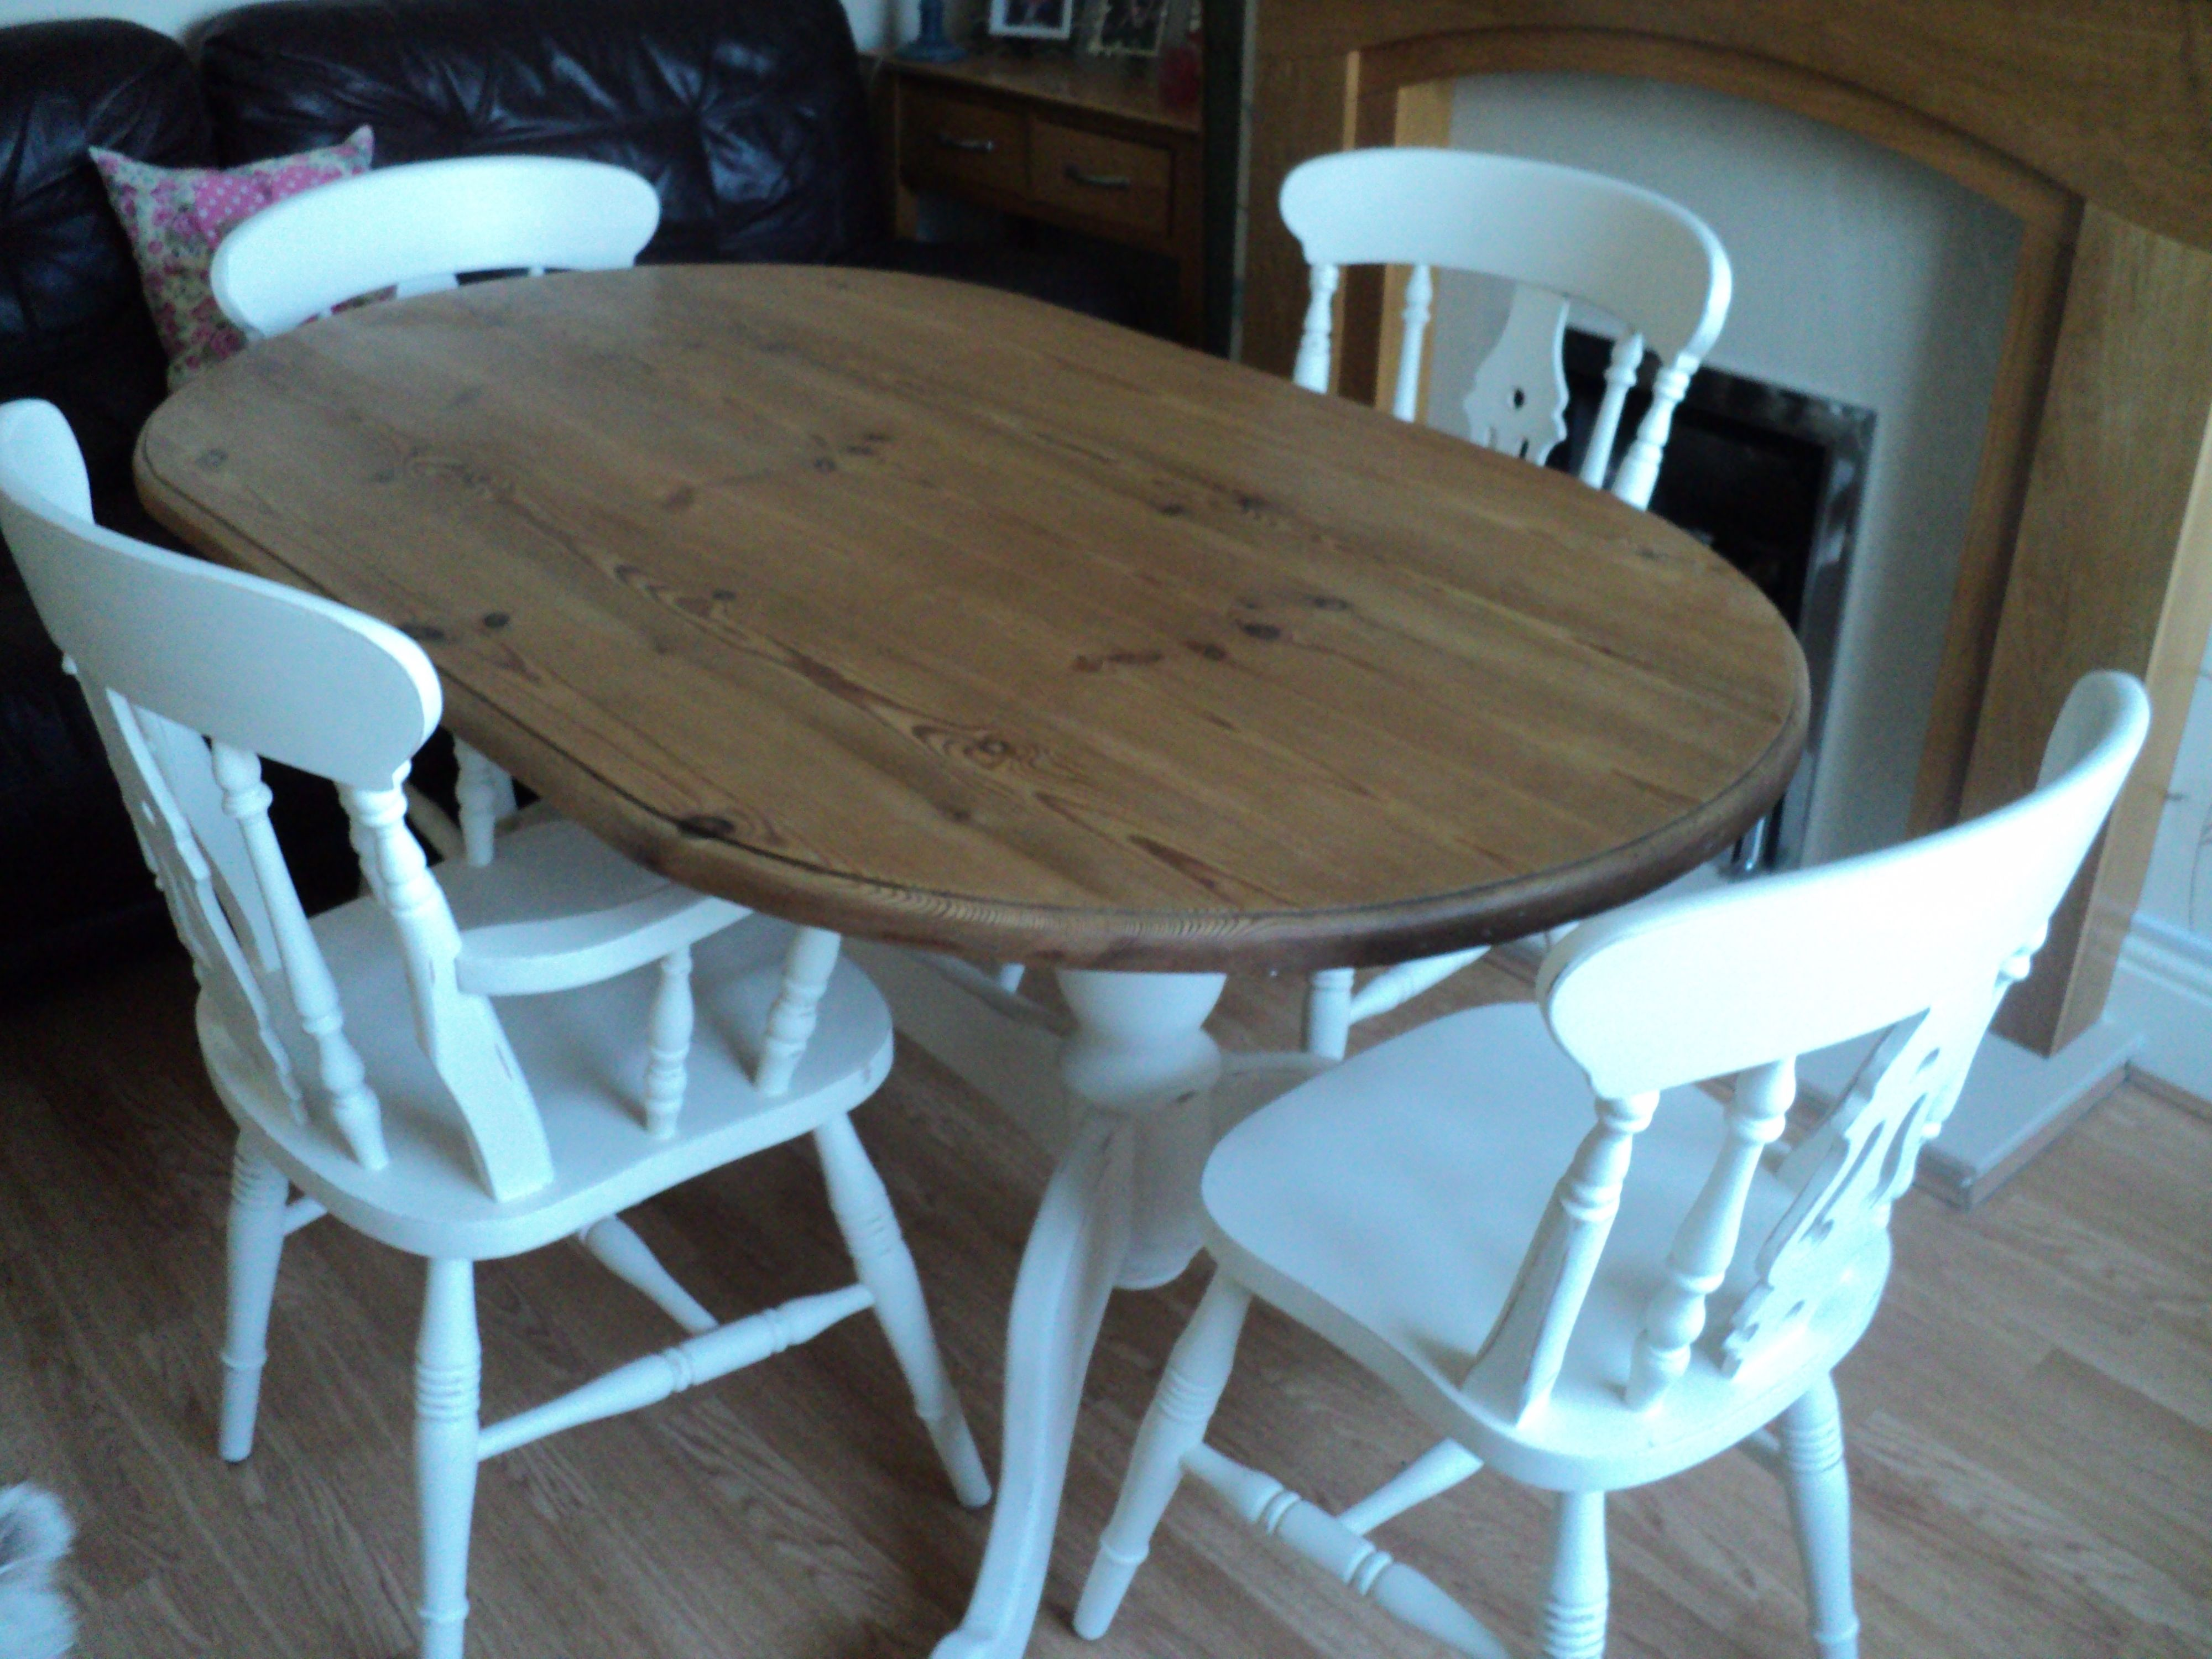 Pine table and chairs in Annie Sloan | My next projects | Pinterest ...